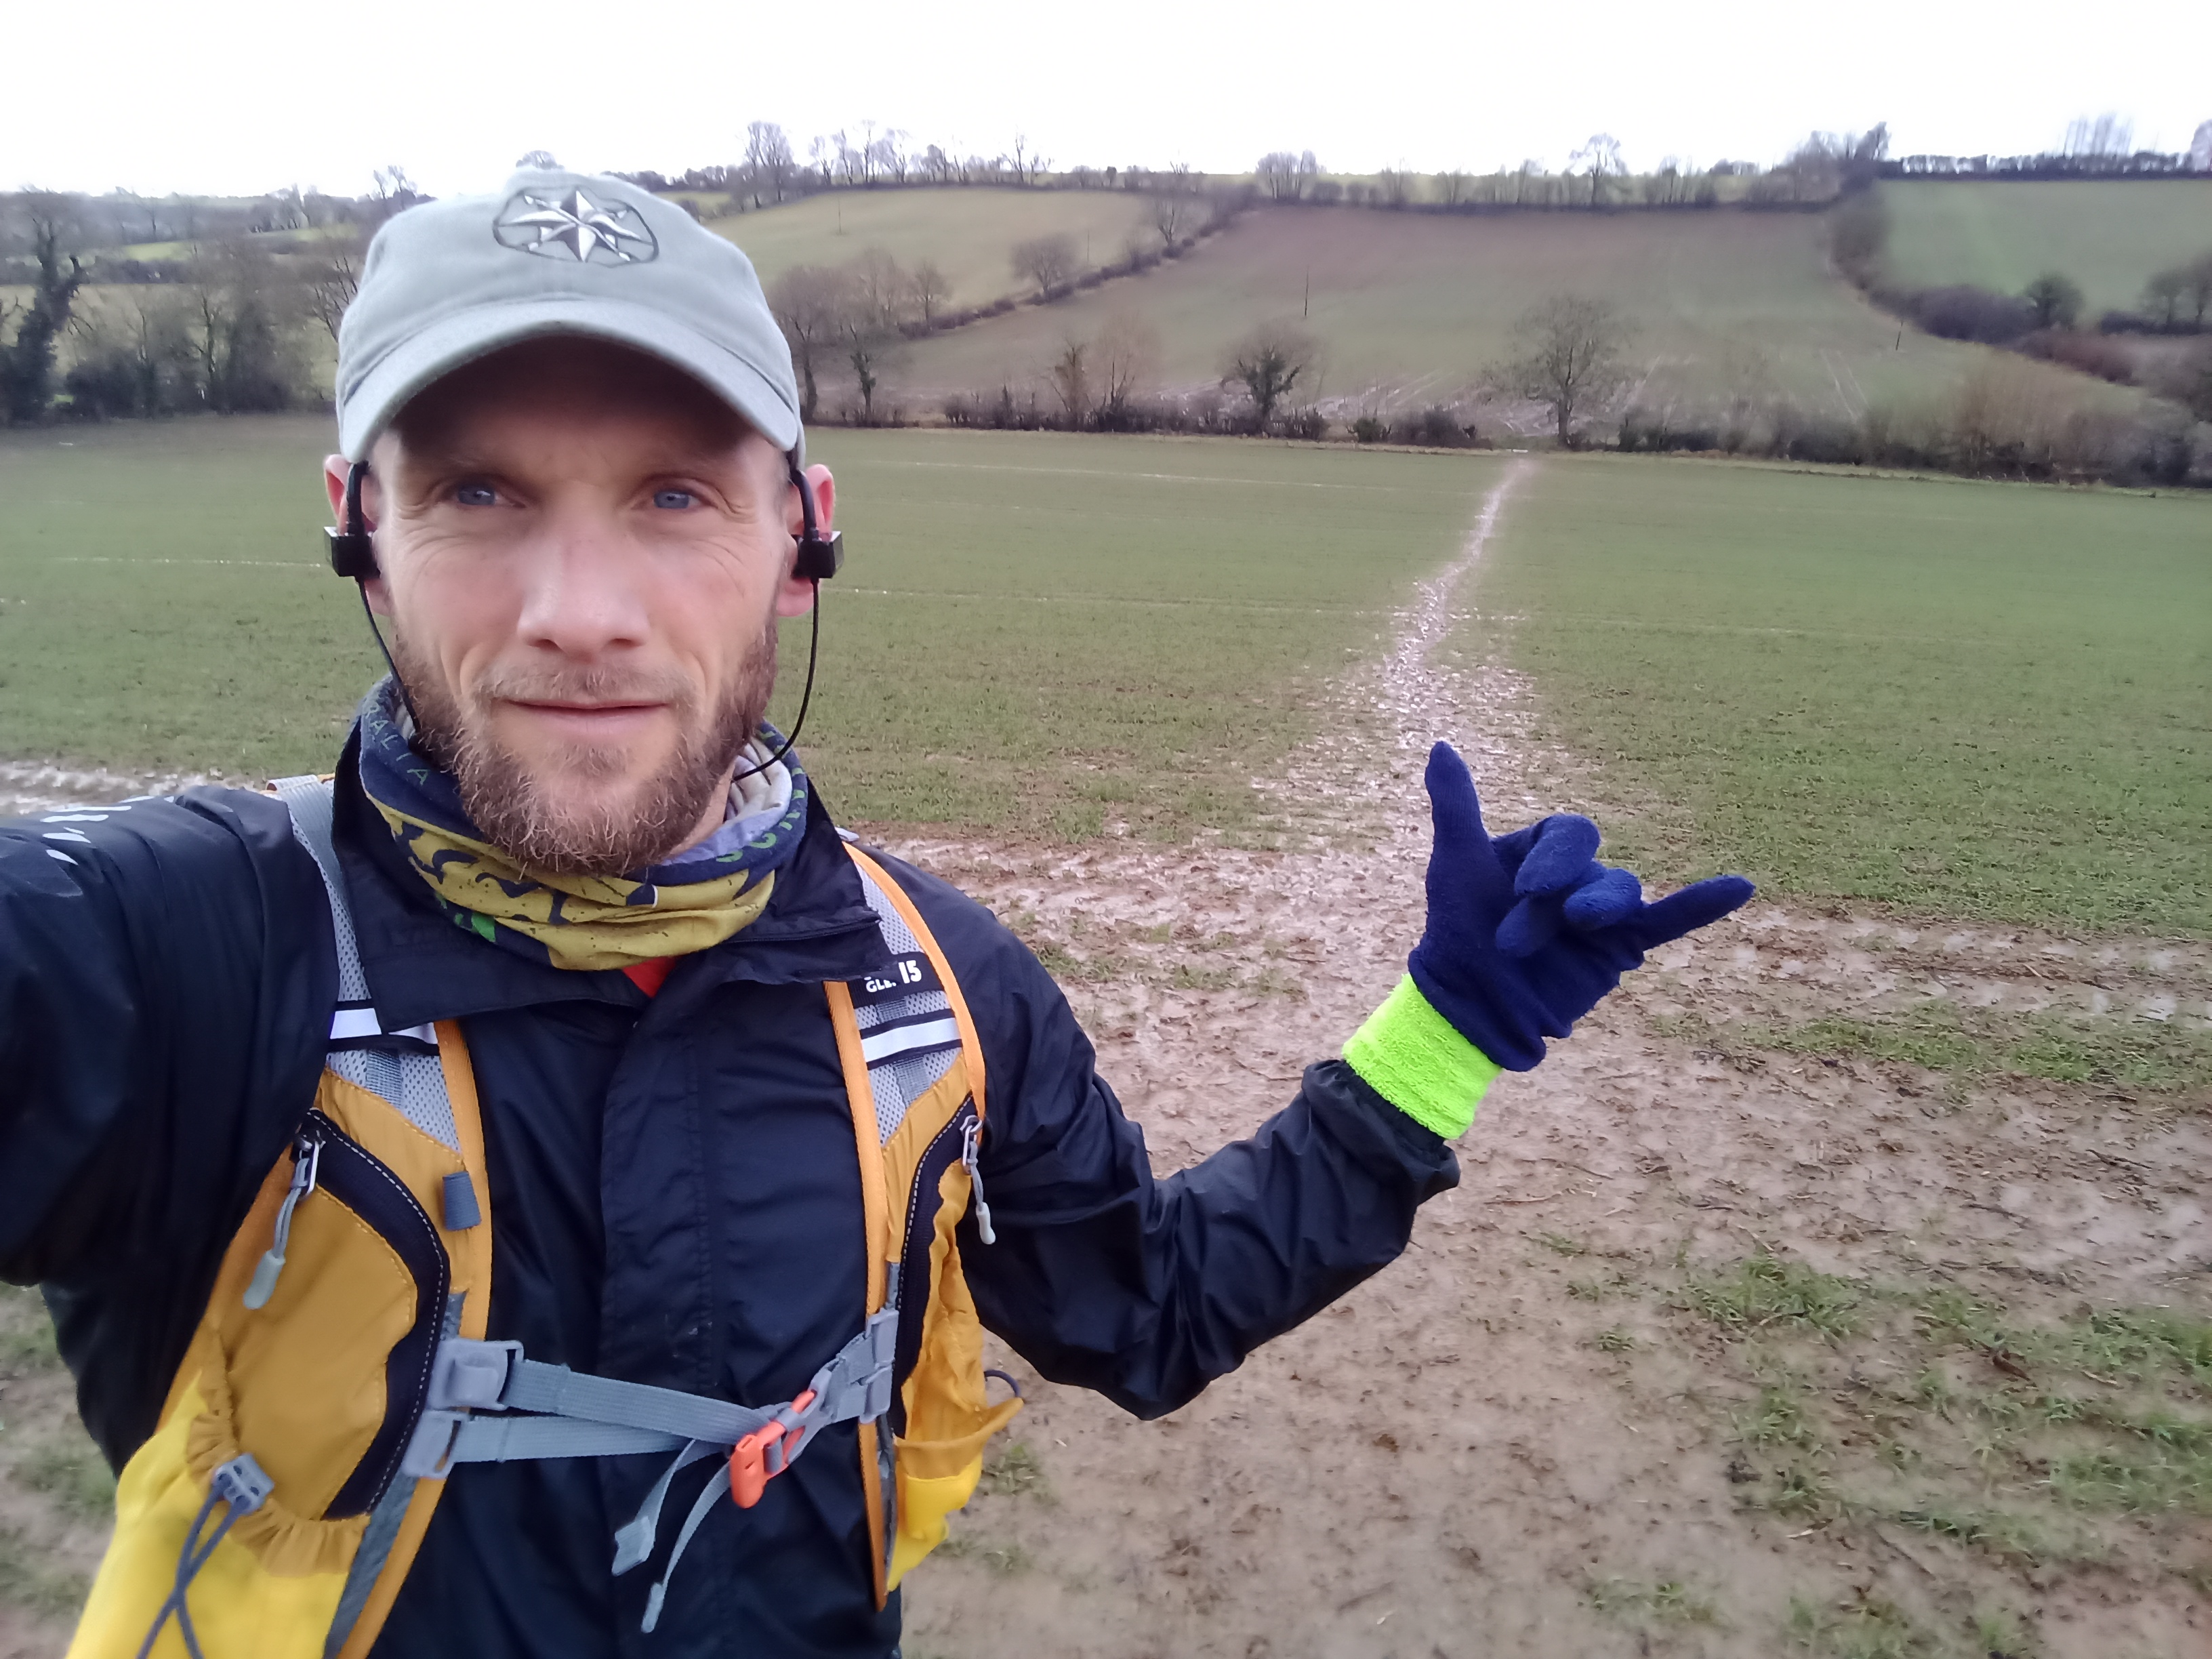 BMF INSTRUCTOR WILL RUN FOR 24 HOURS STRAIGHT TO THANK HIS NHS MEMBERS